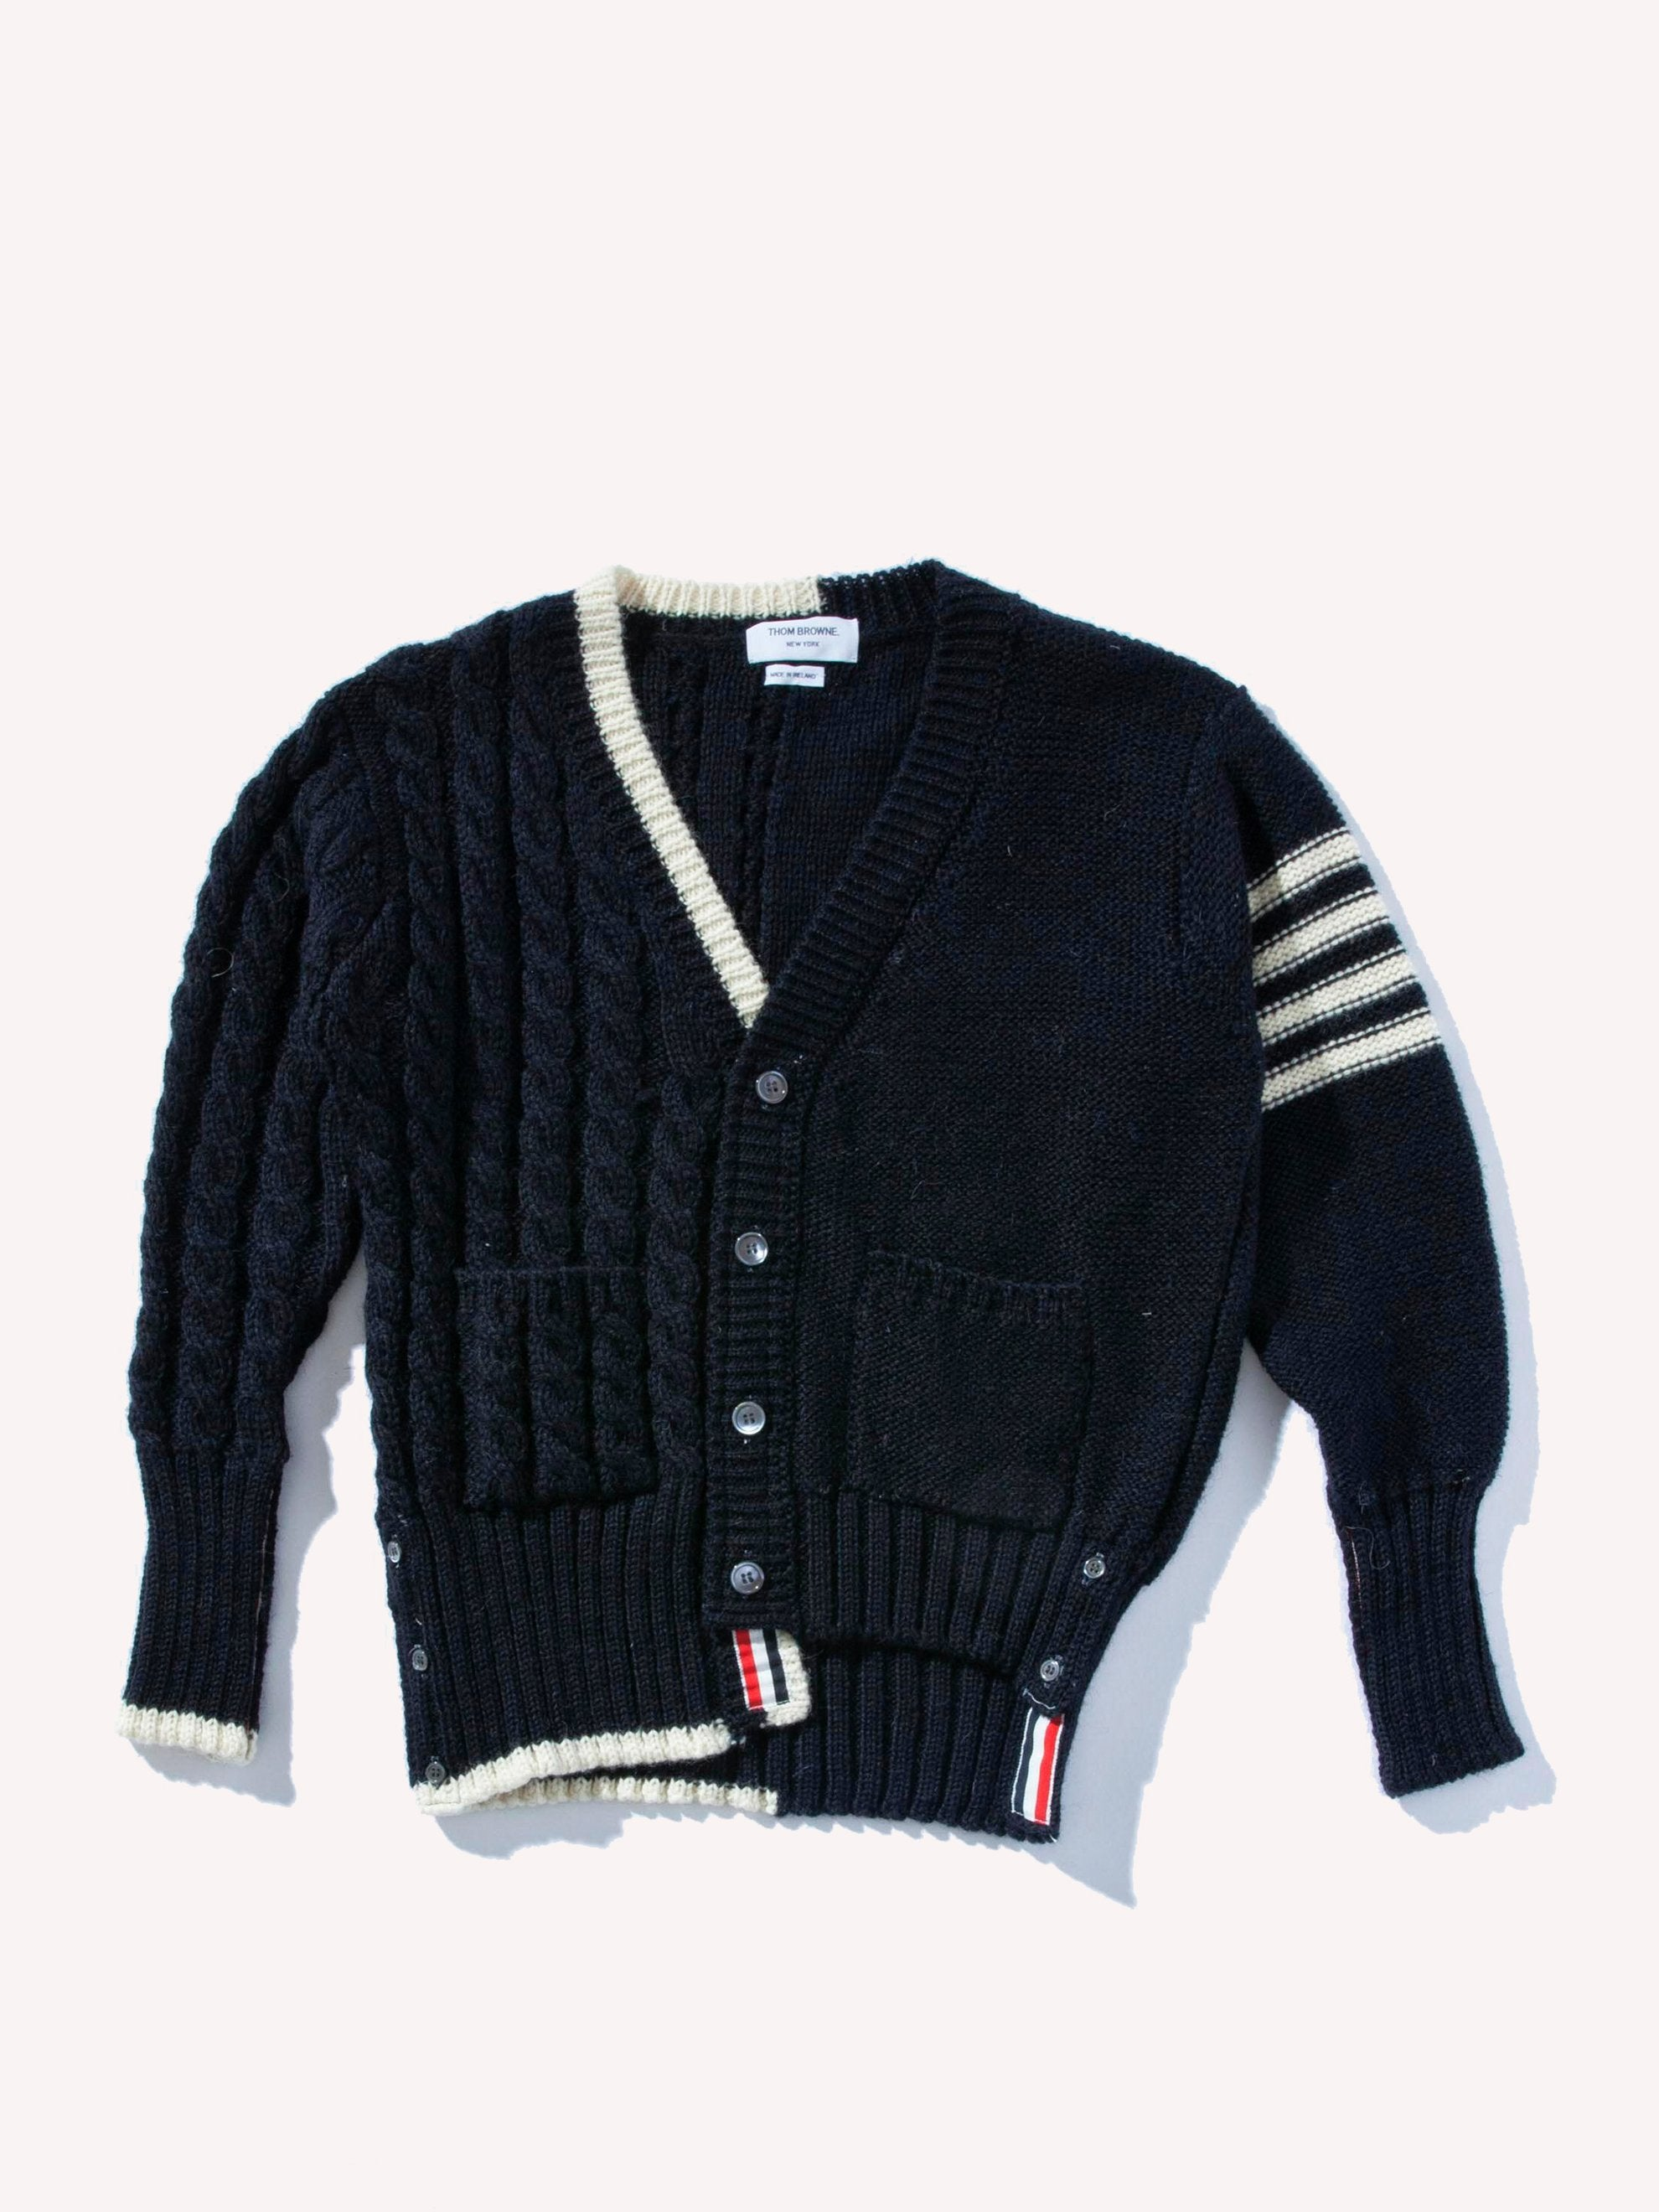 Navy V-Neck Cardigan W/ Aran Cable in British Wool 1